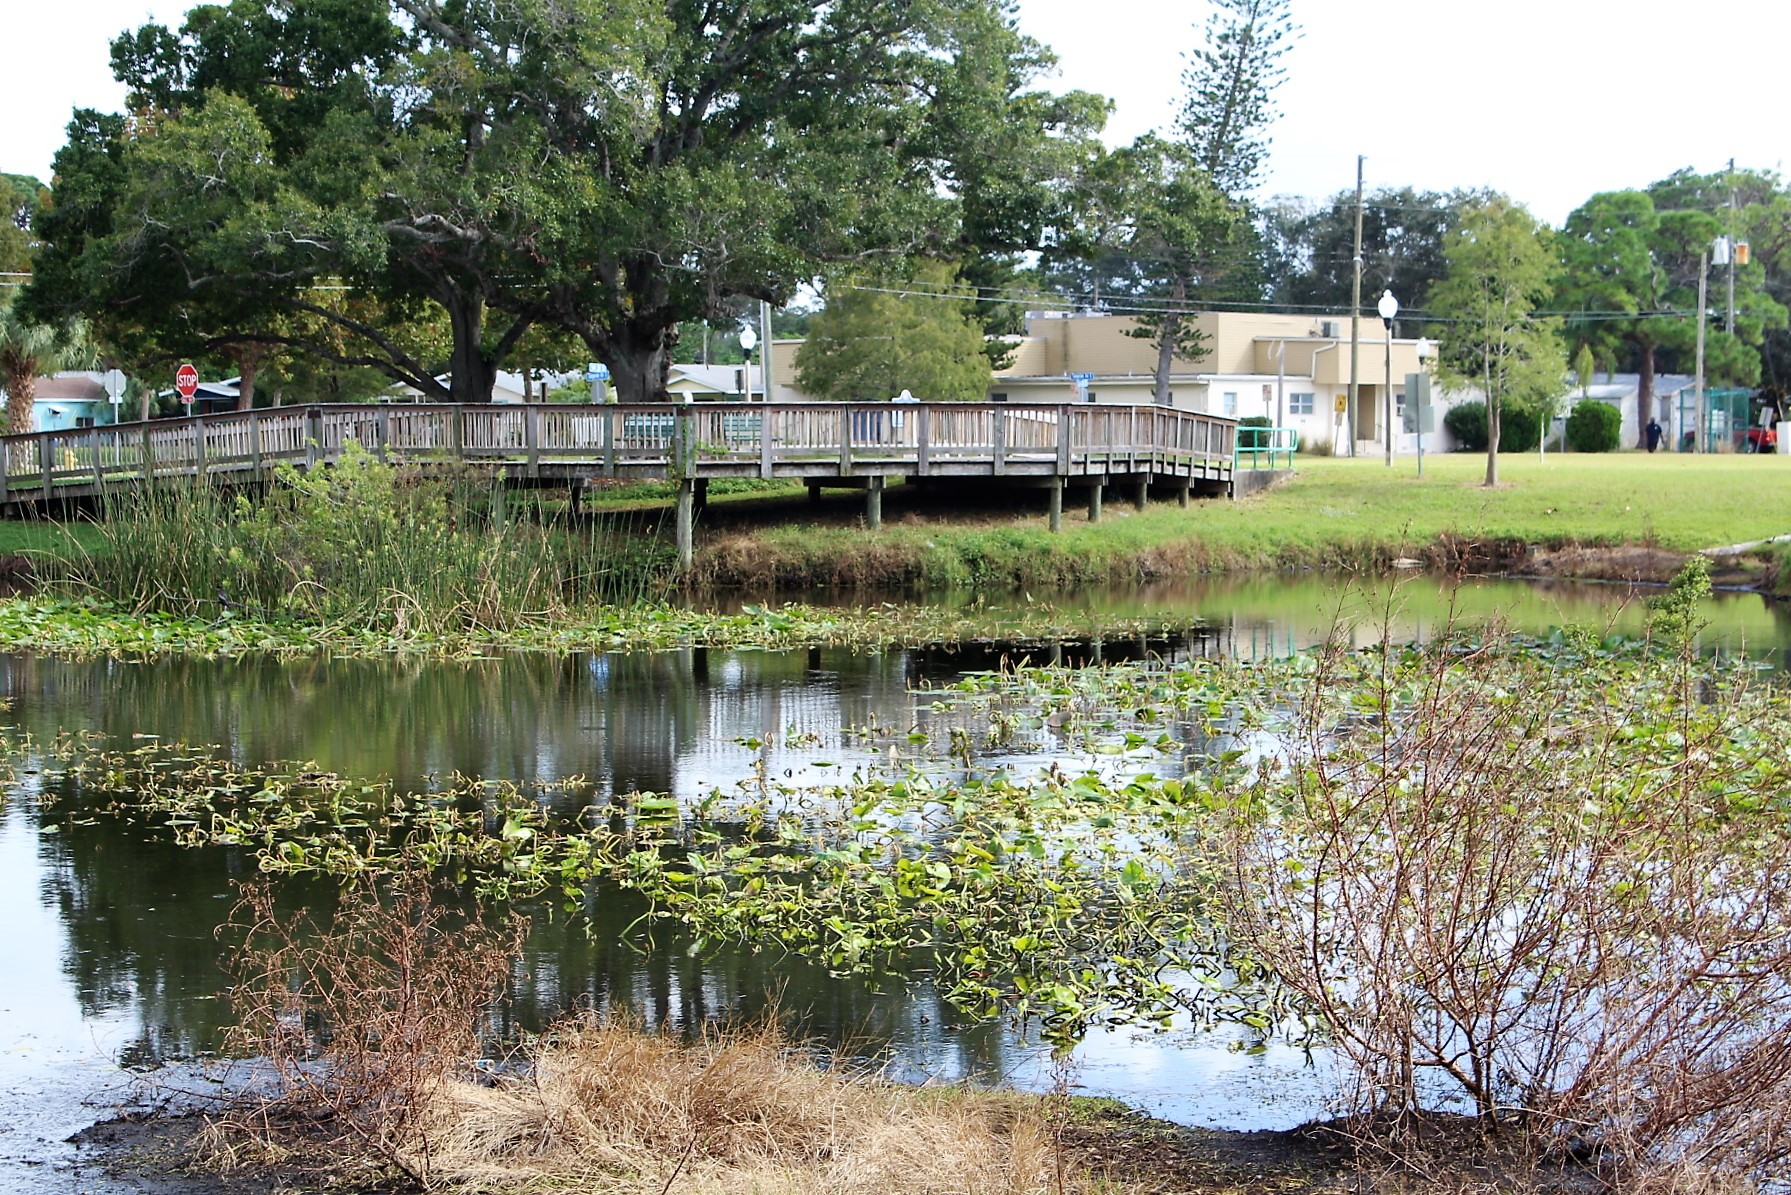 A retention pond with greenery and a wooden foot bridge.